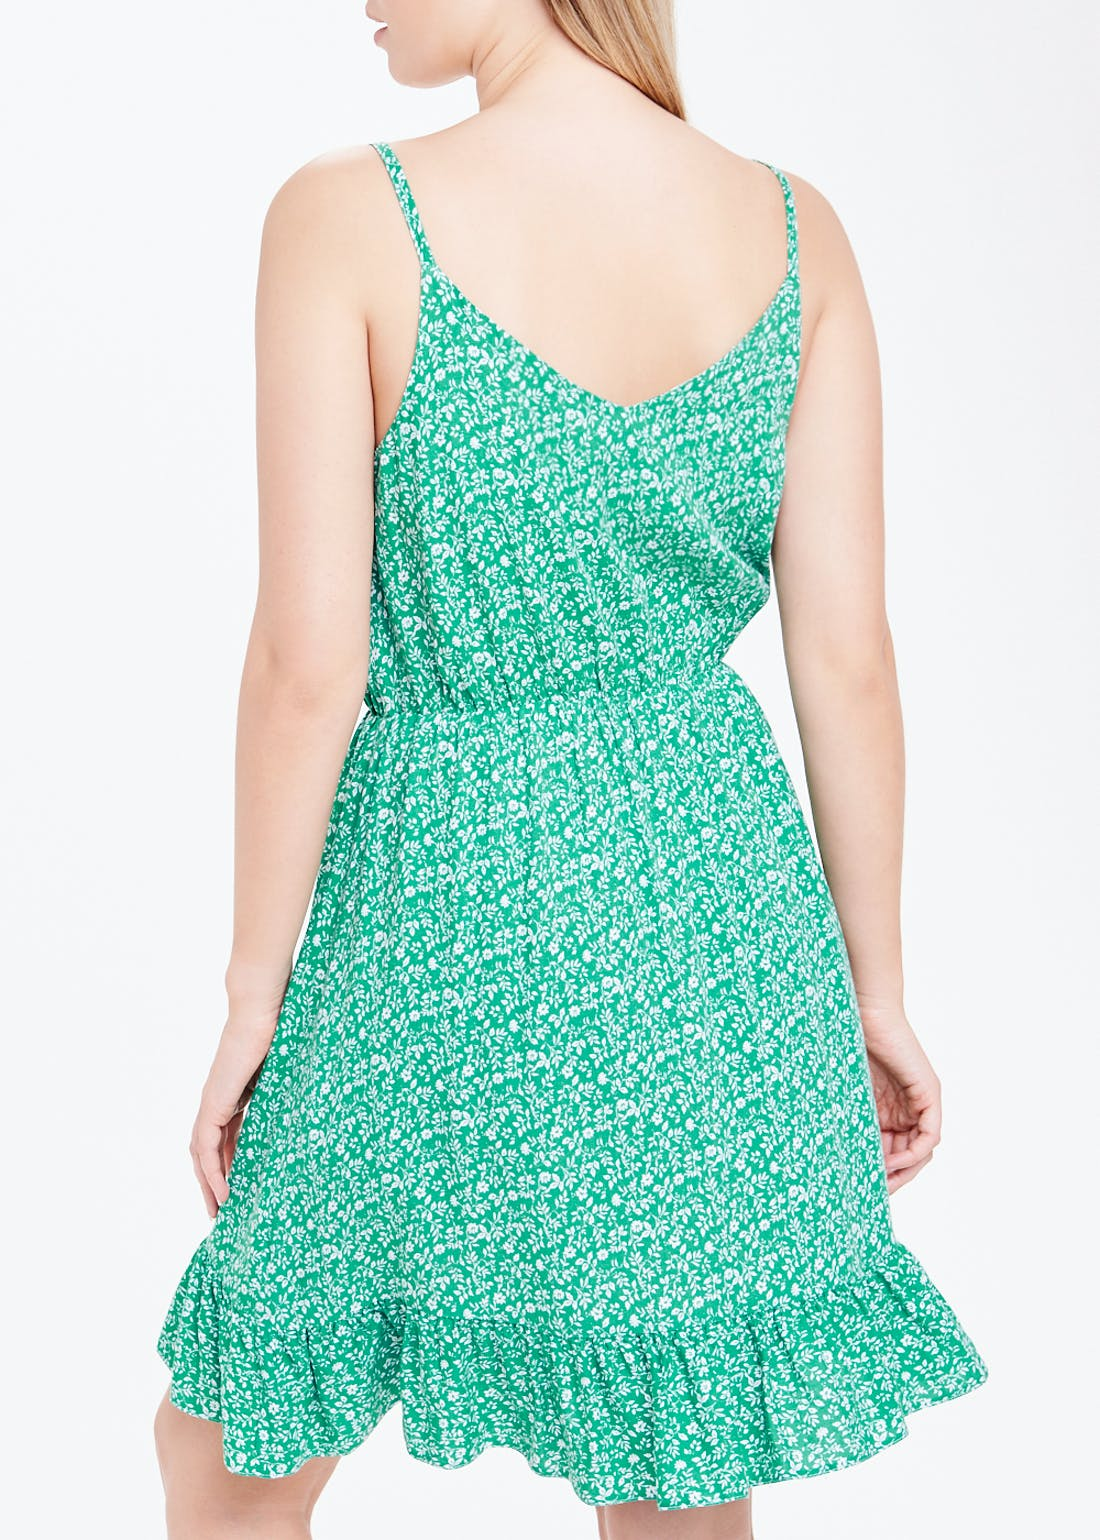 Green Ditsy Floral Cami Dress